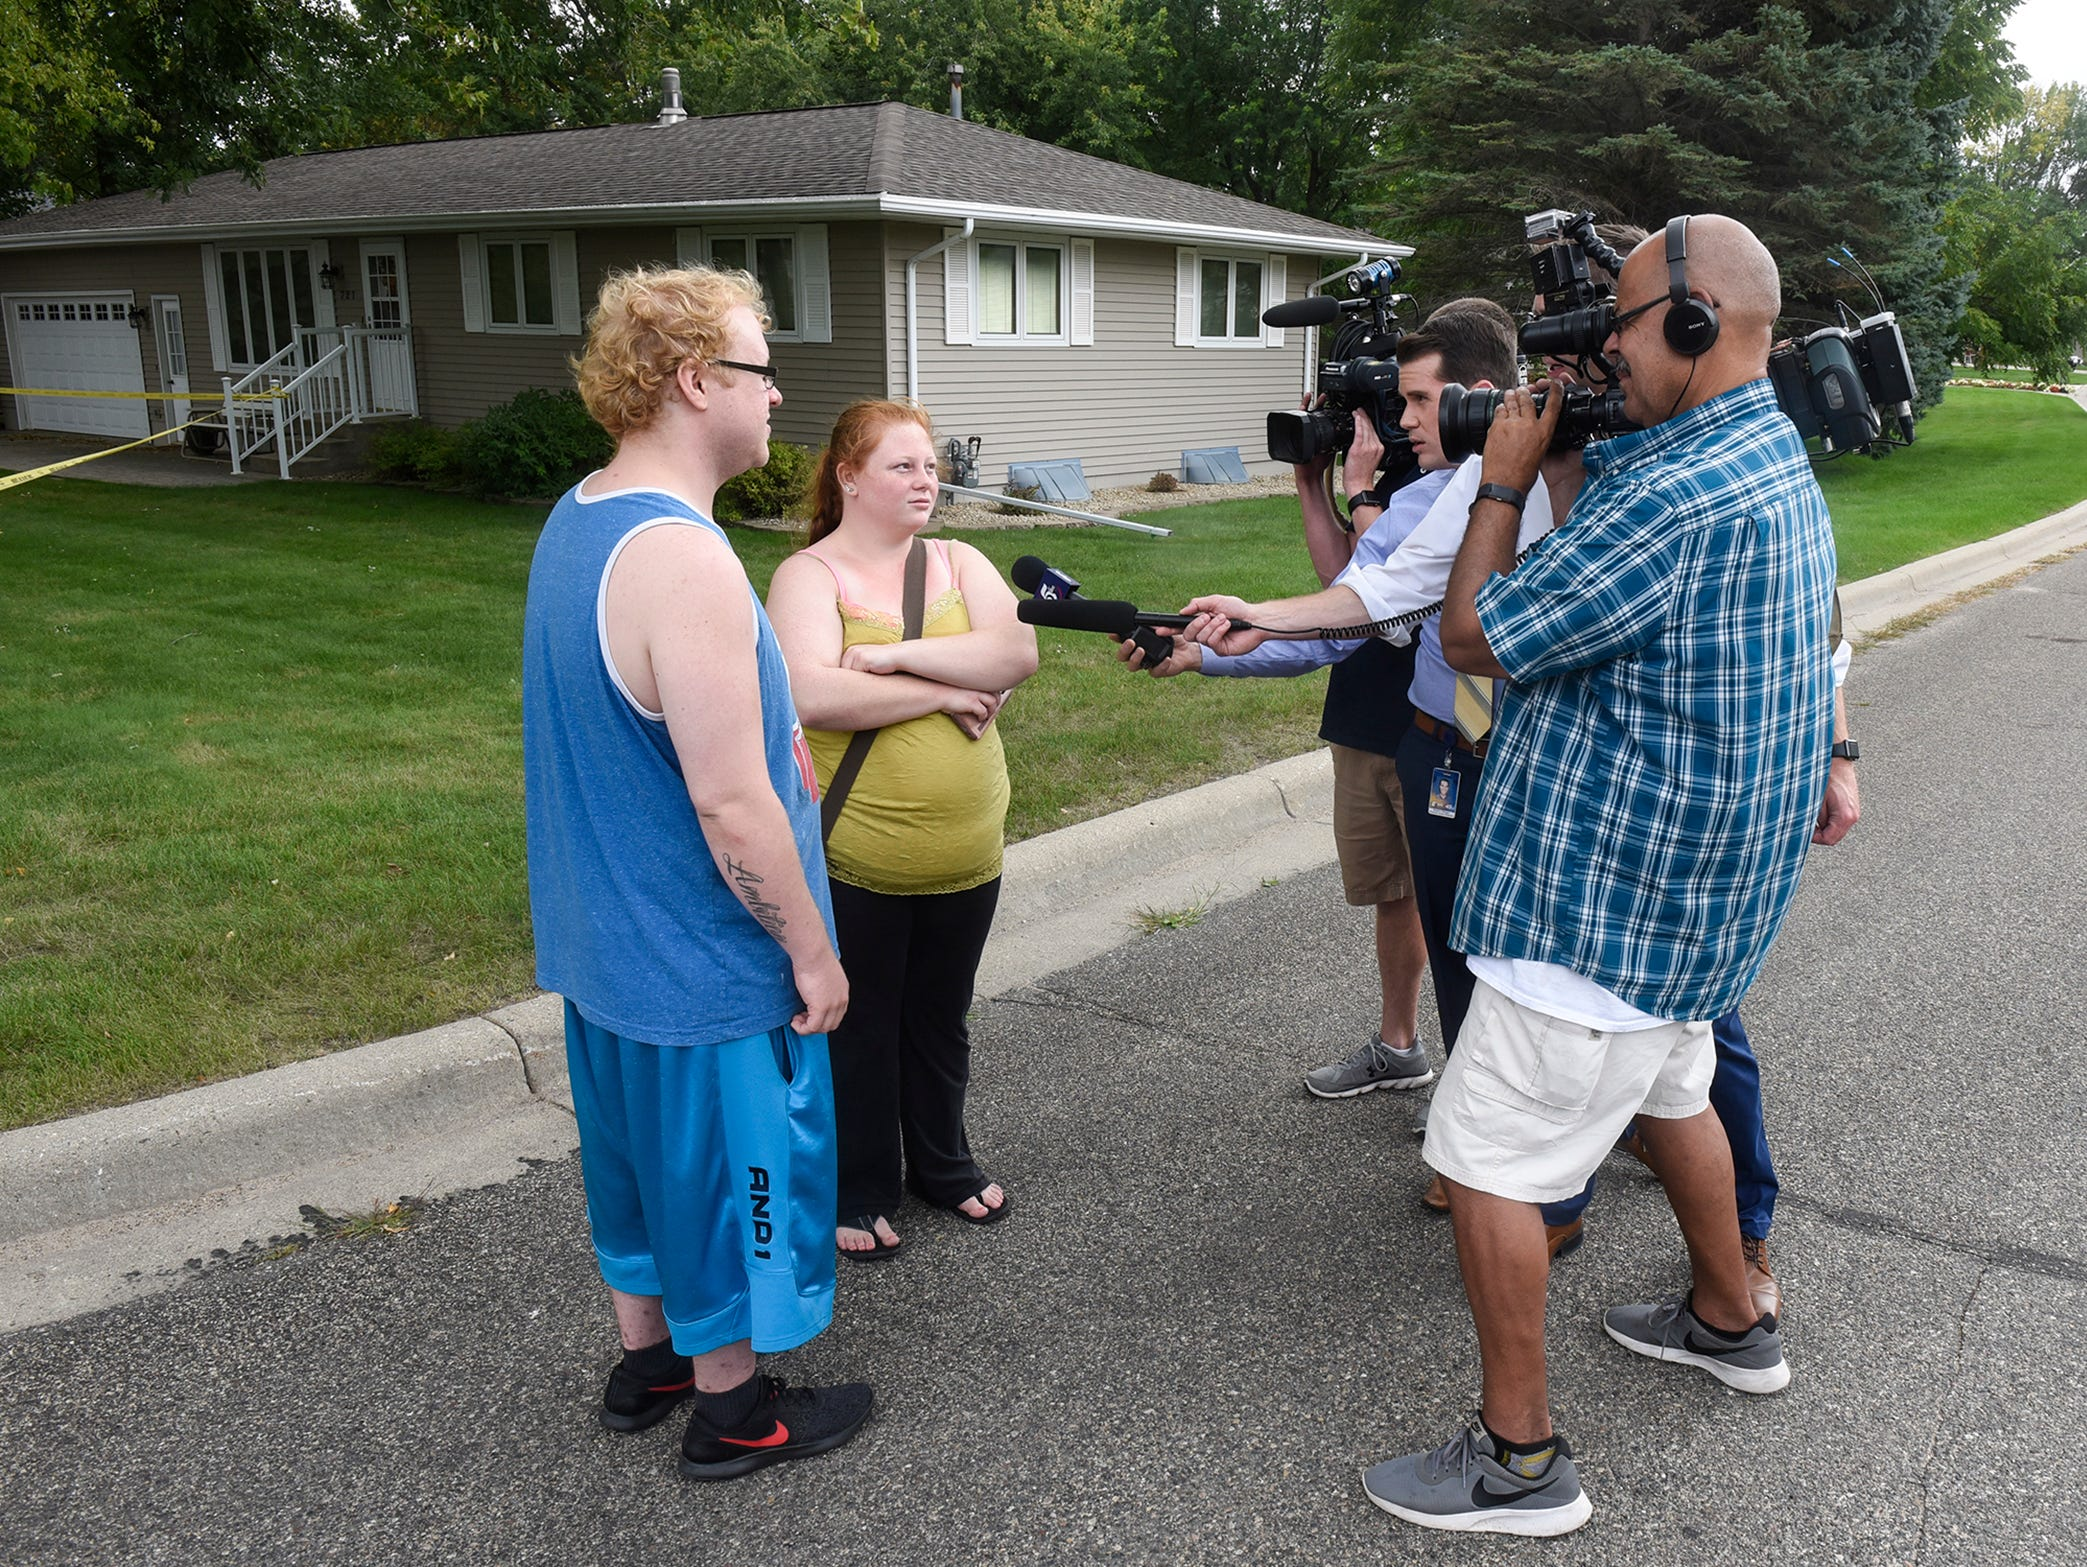 Brandon Schindler and Katelynn Cheadle answer questions from television reporters near the scene where a Stearns County deputy was shot with an arrow Thursday, Sept. 13, in Sauk Centre.